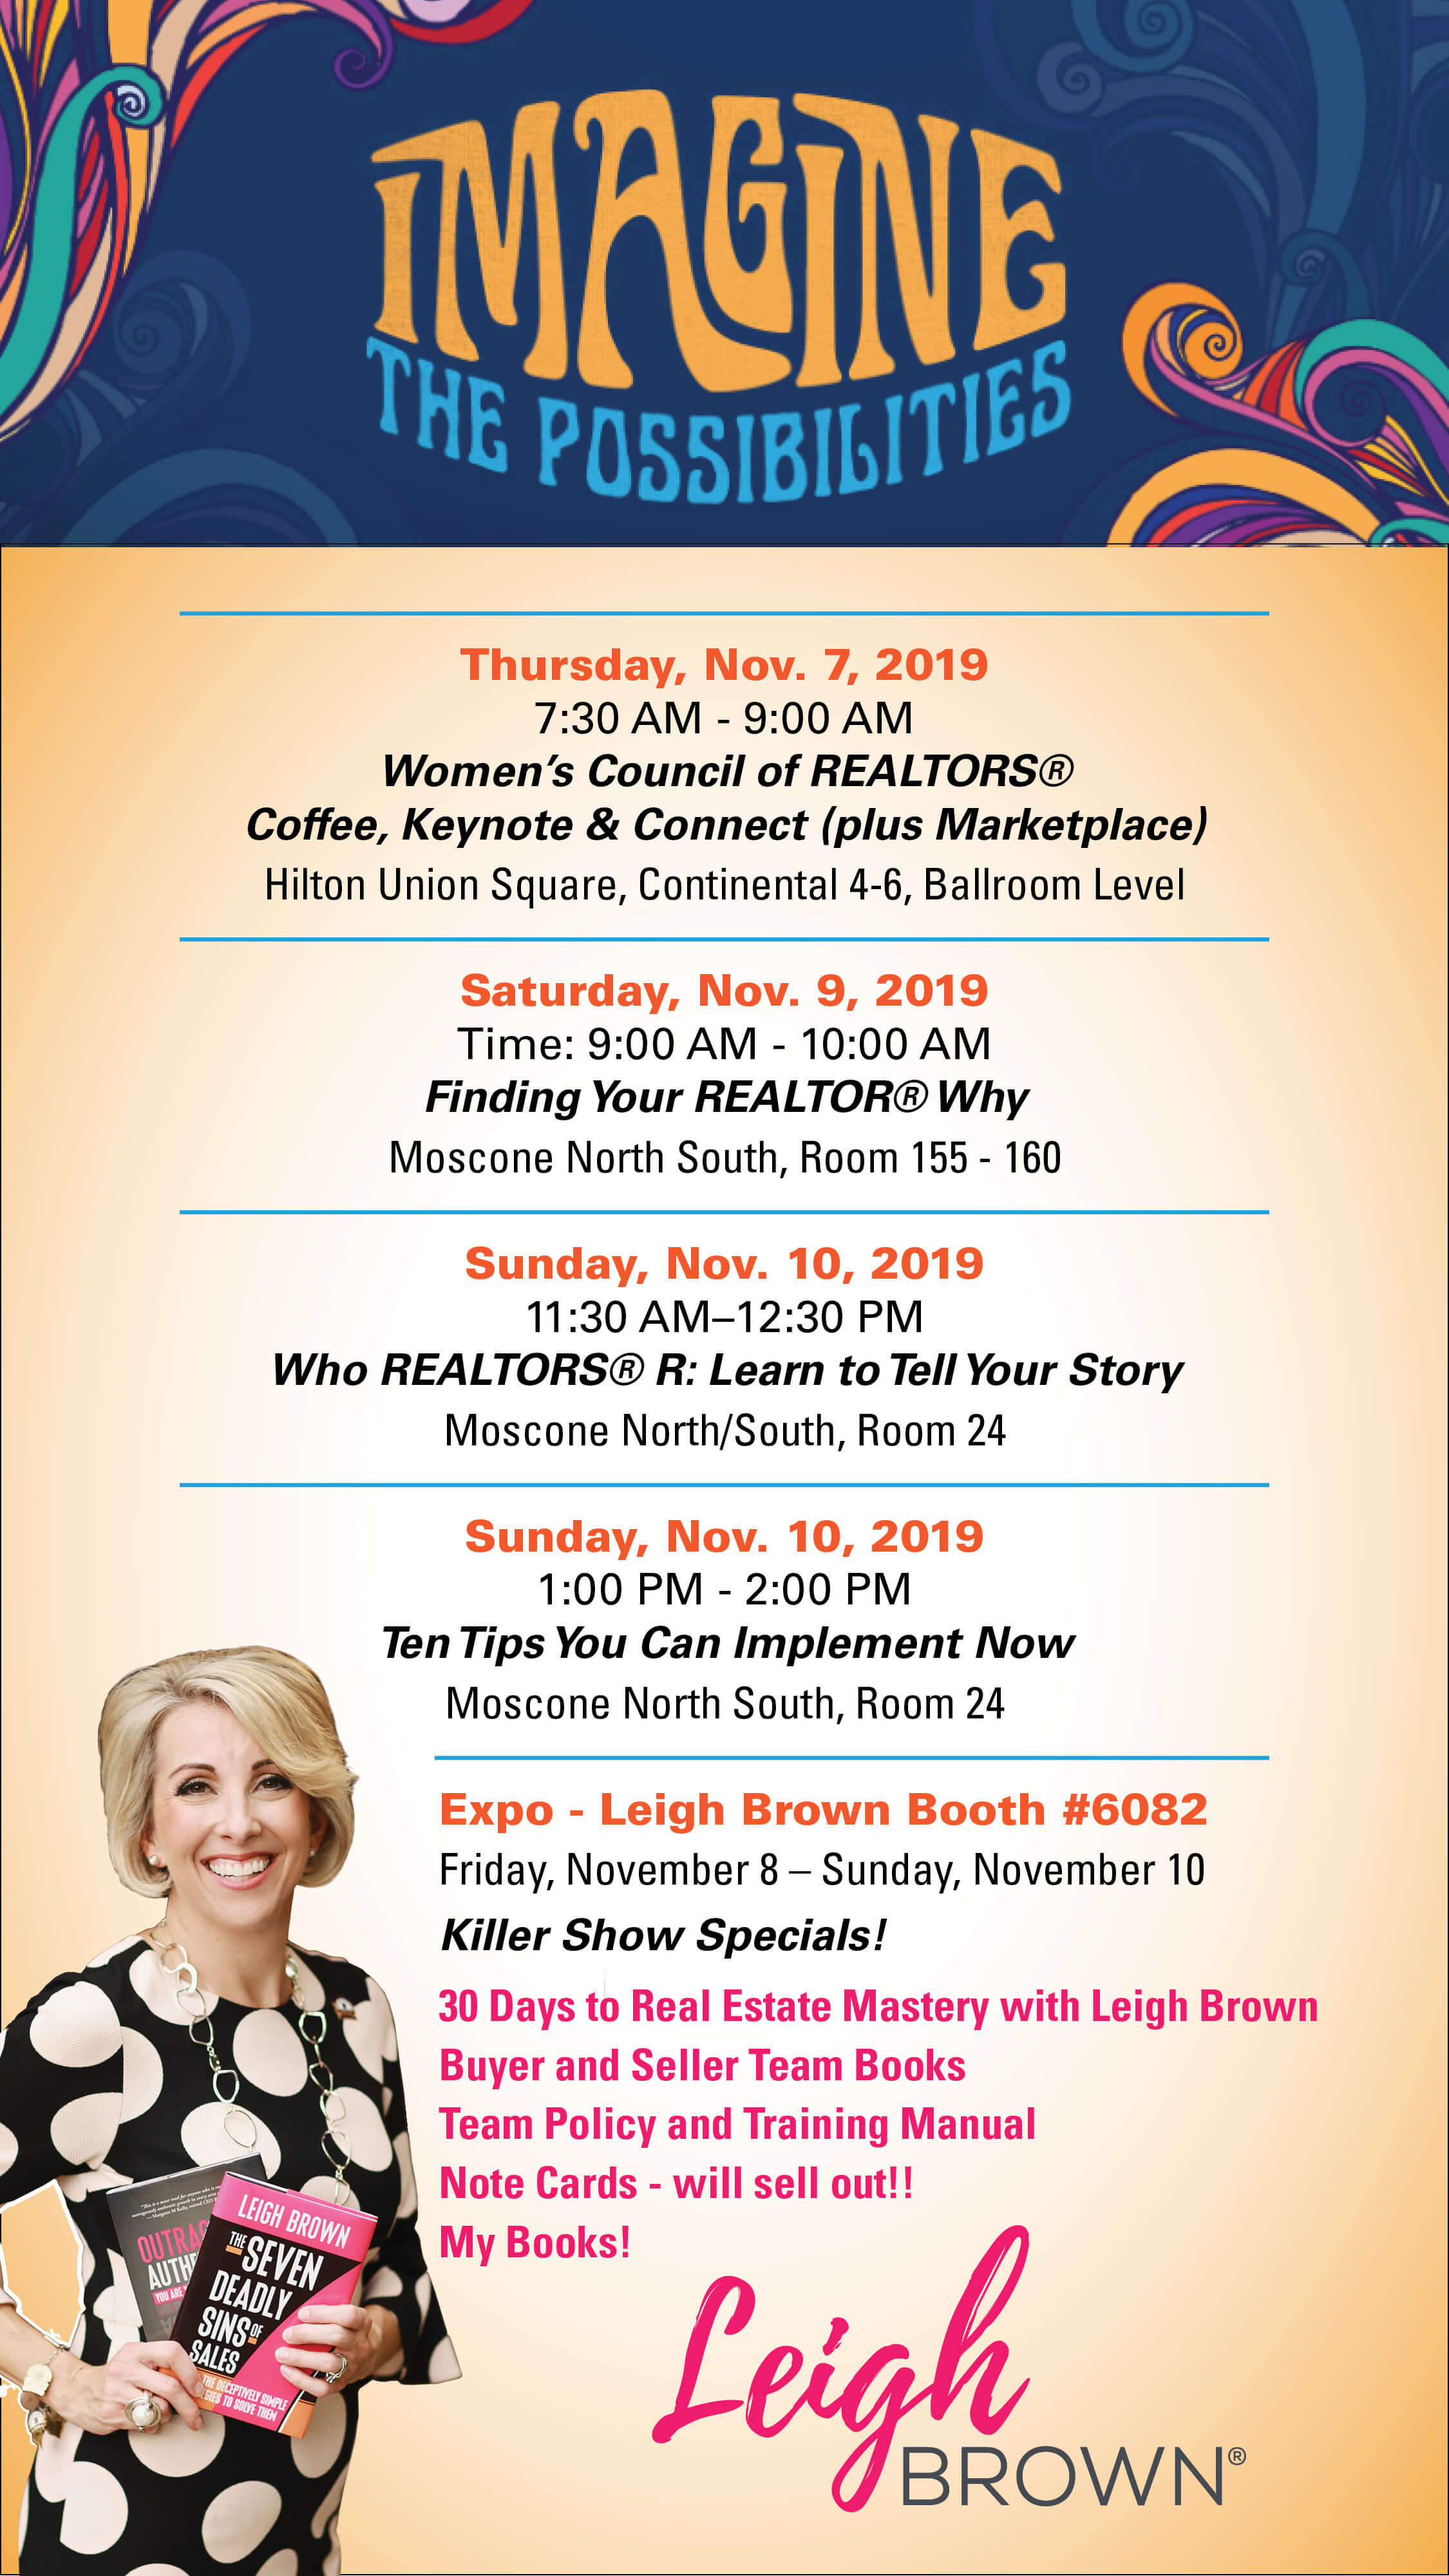 Find Leigh Brown at NAR Schedule